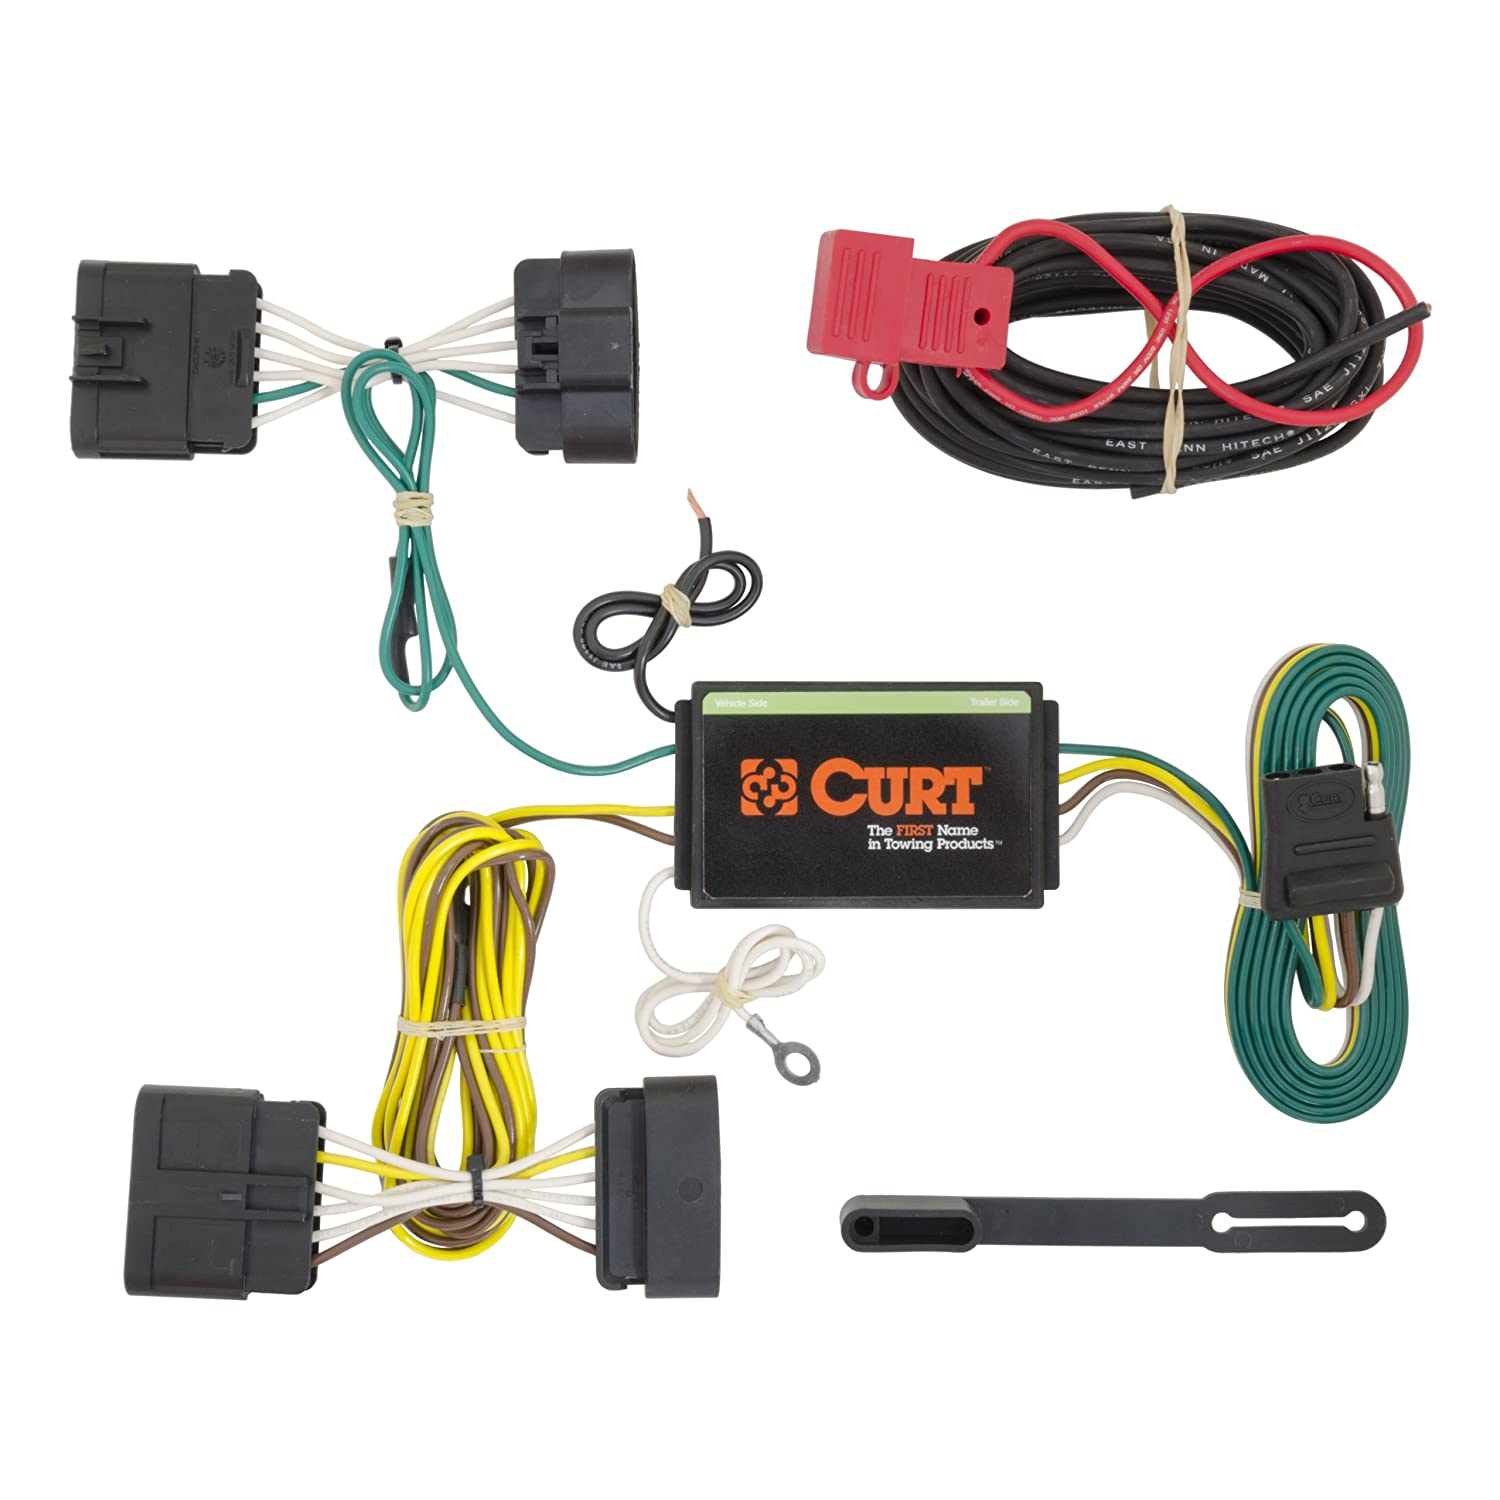 813yKcAj1 L._SL1500_ amazon com curt 56198 custom wiring harness automotive  at panicattacktreatment.co